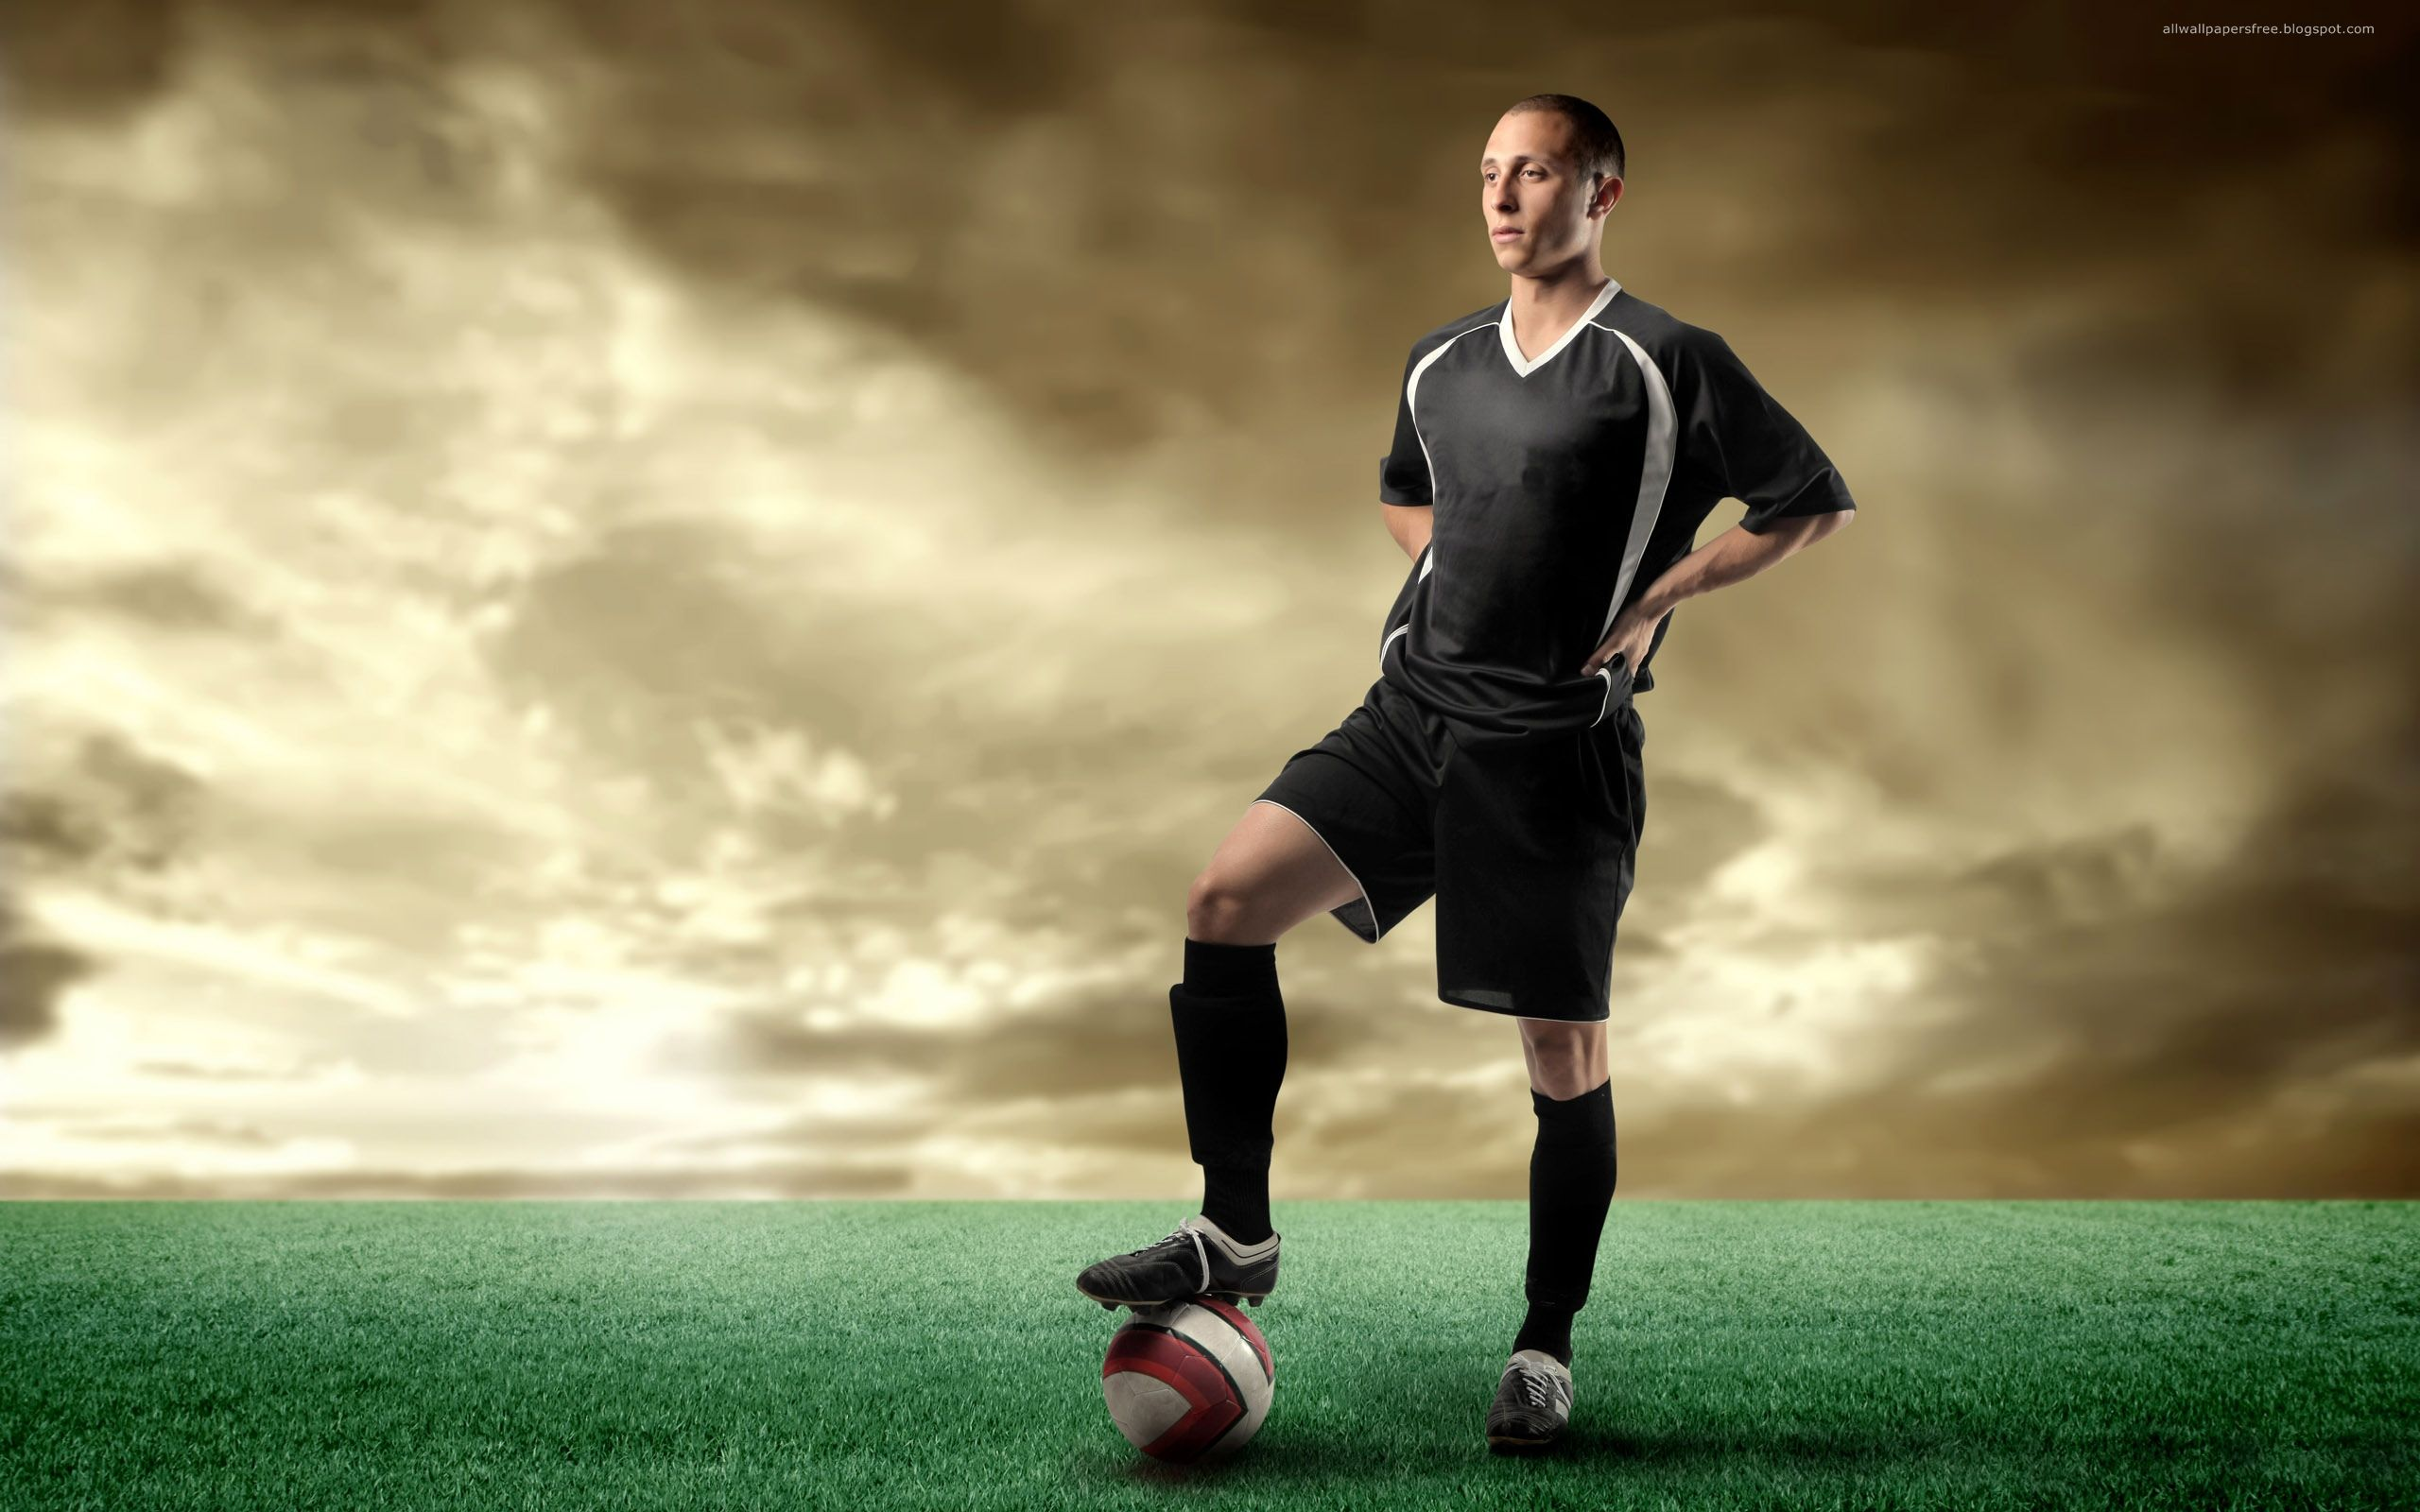 2560x1440 Ready To Play Football Youtube Channel Cover Football Youtube Sports Action Photography Action Photography